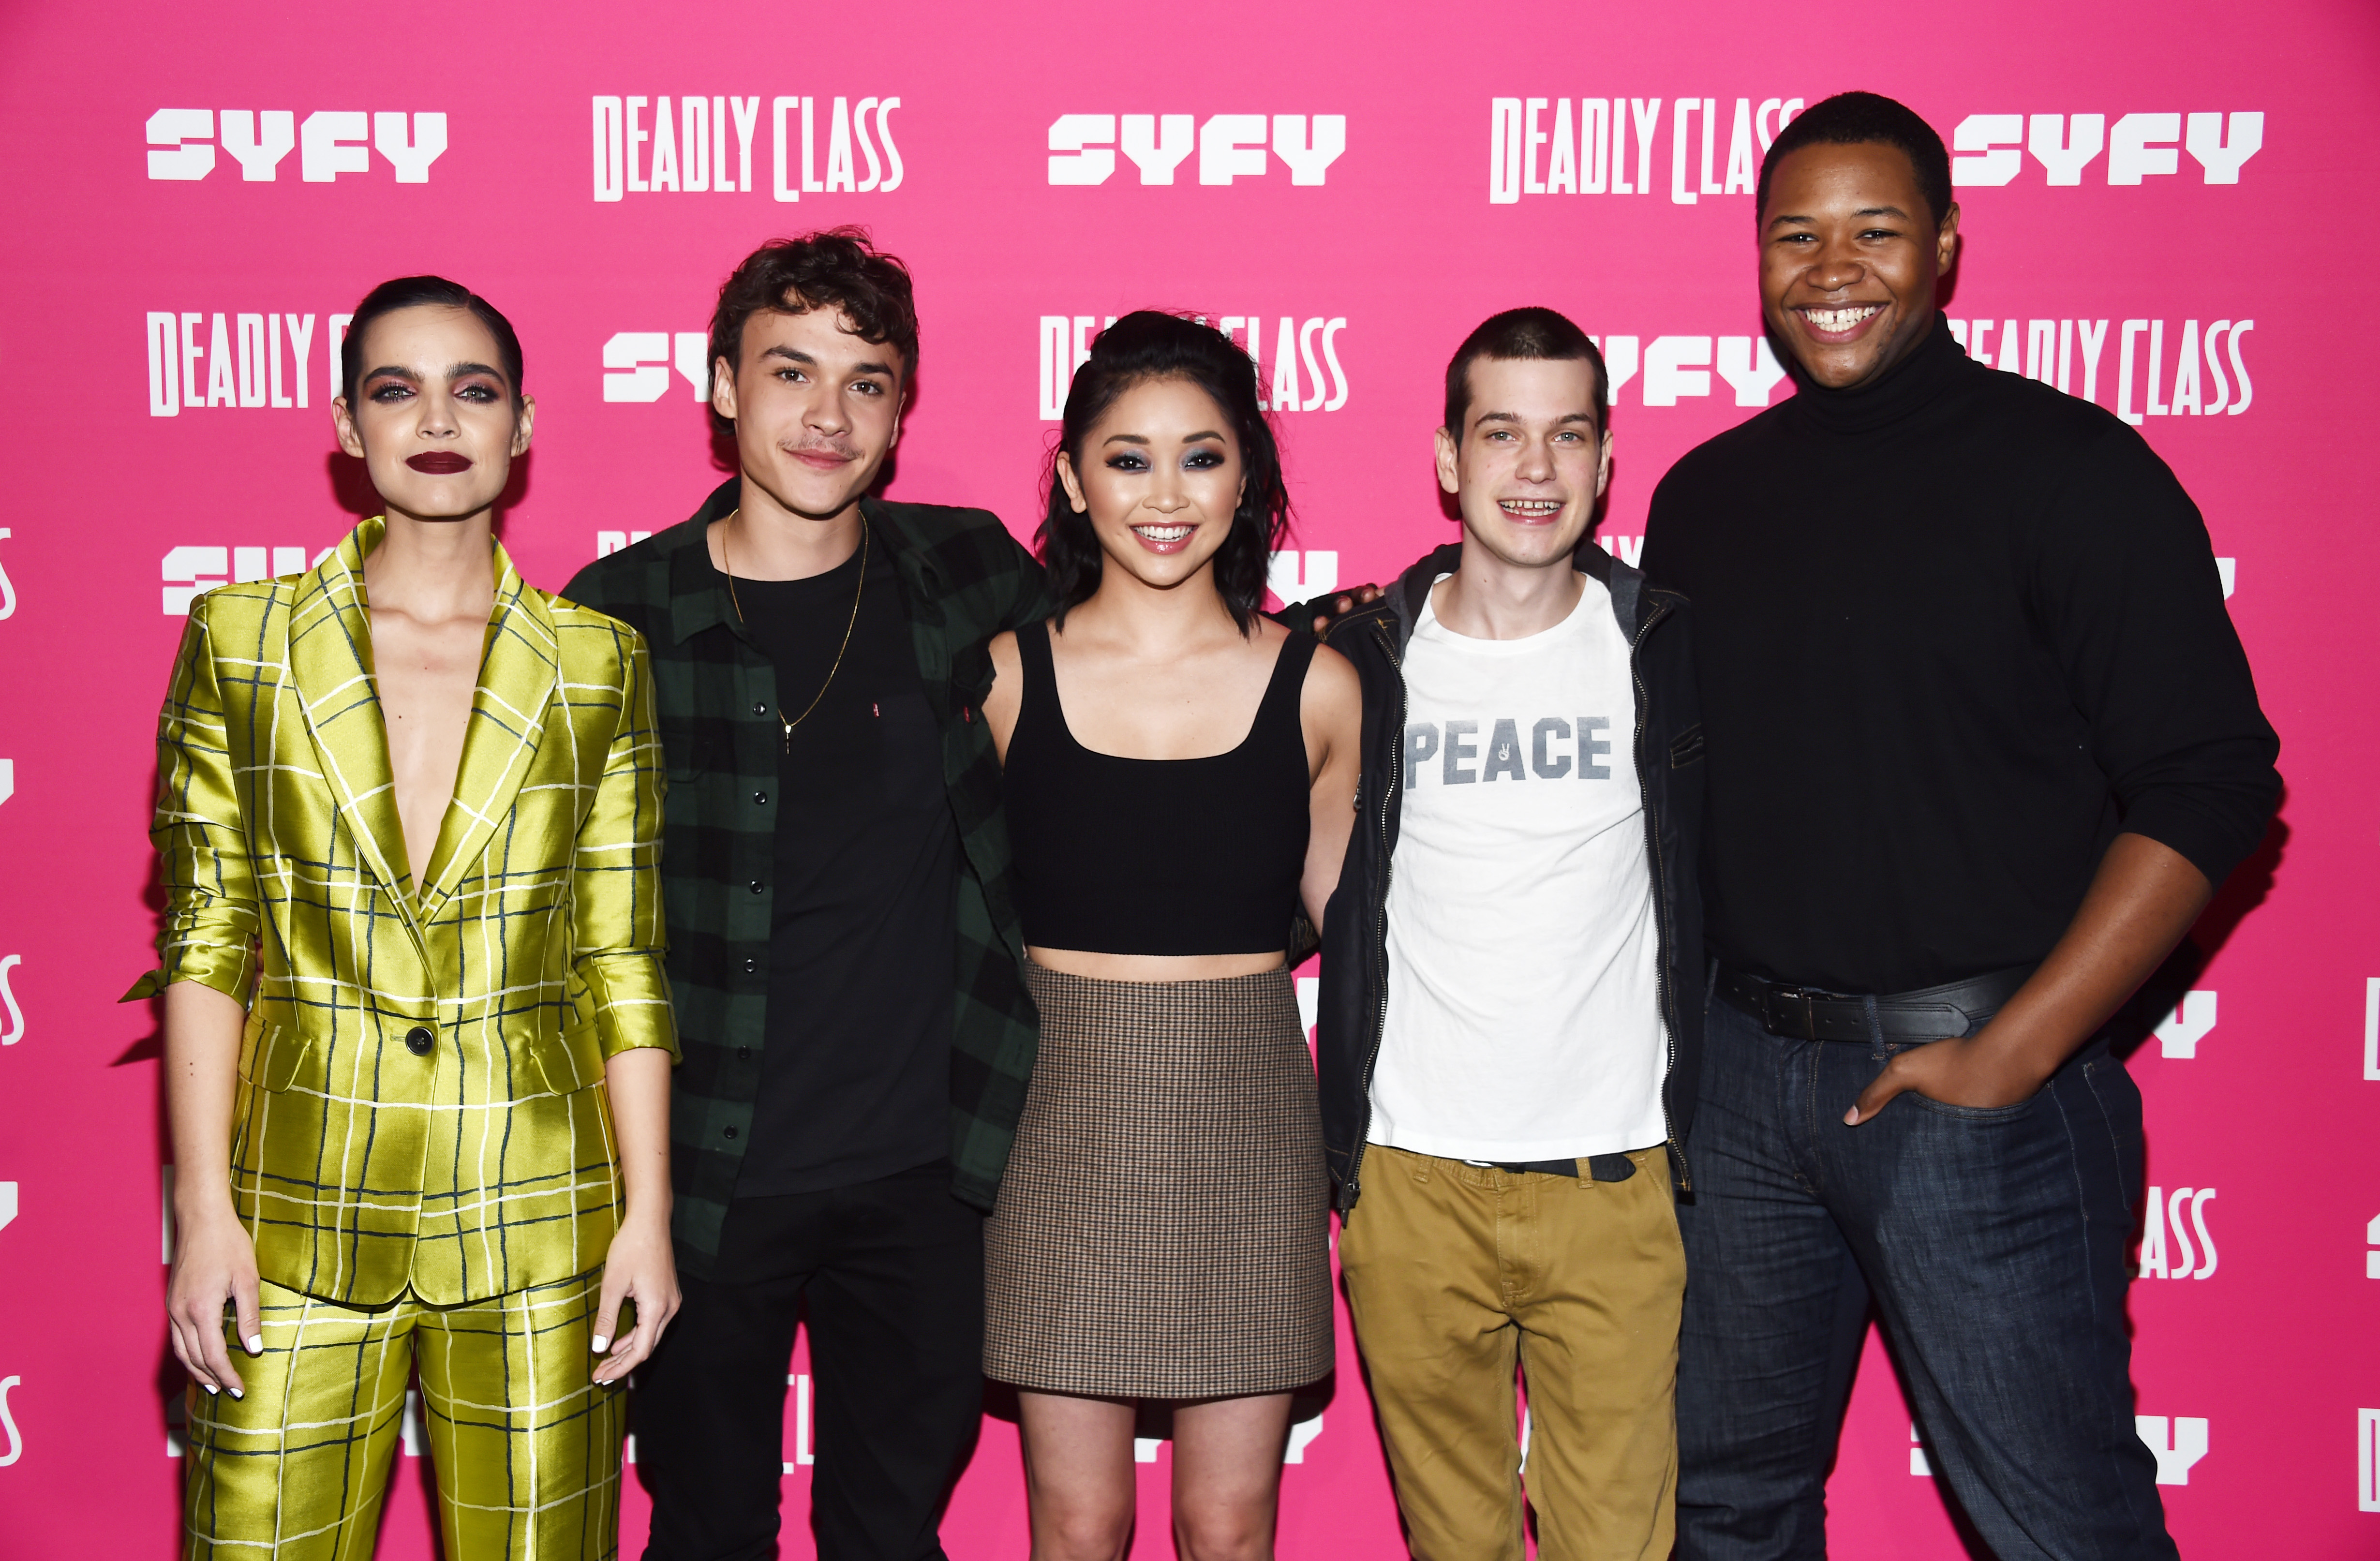 (L-R) Maria Gabriela de Faria, Benjamin Wadsworth, Lana Condor, Liam James and Luke Tennie arrive at SYFY's new series 'Deadly Class' premiere screening at The Roxy Theatre on January 03, 2019, in West Hollywood, California. (Getty Images)